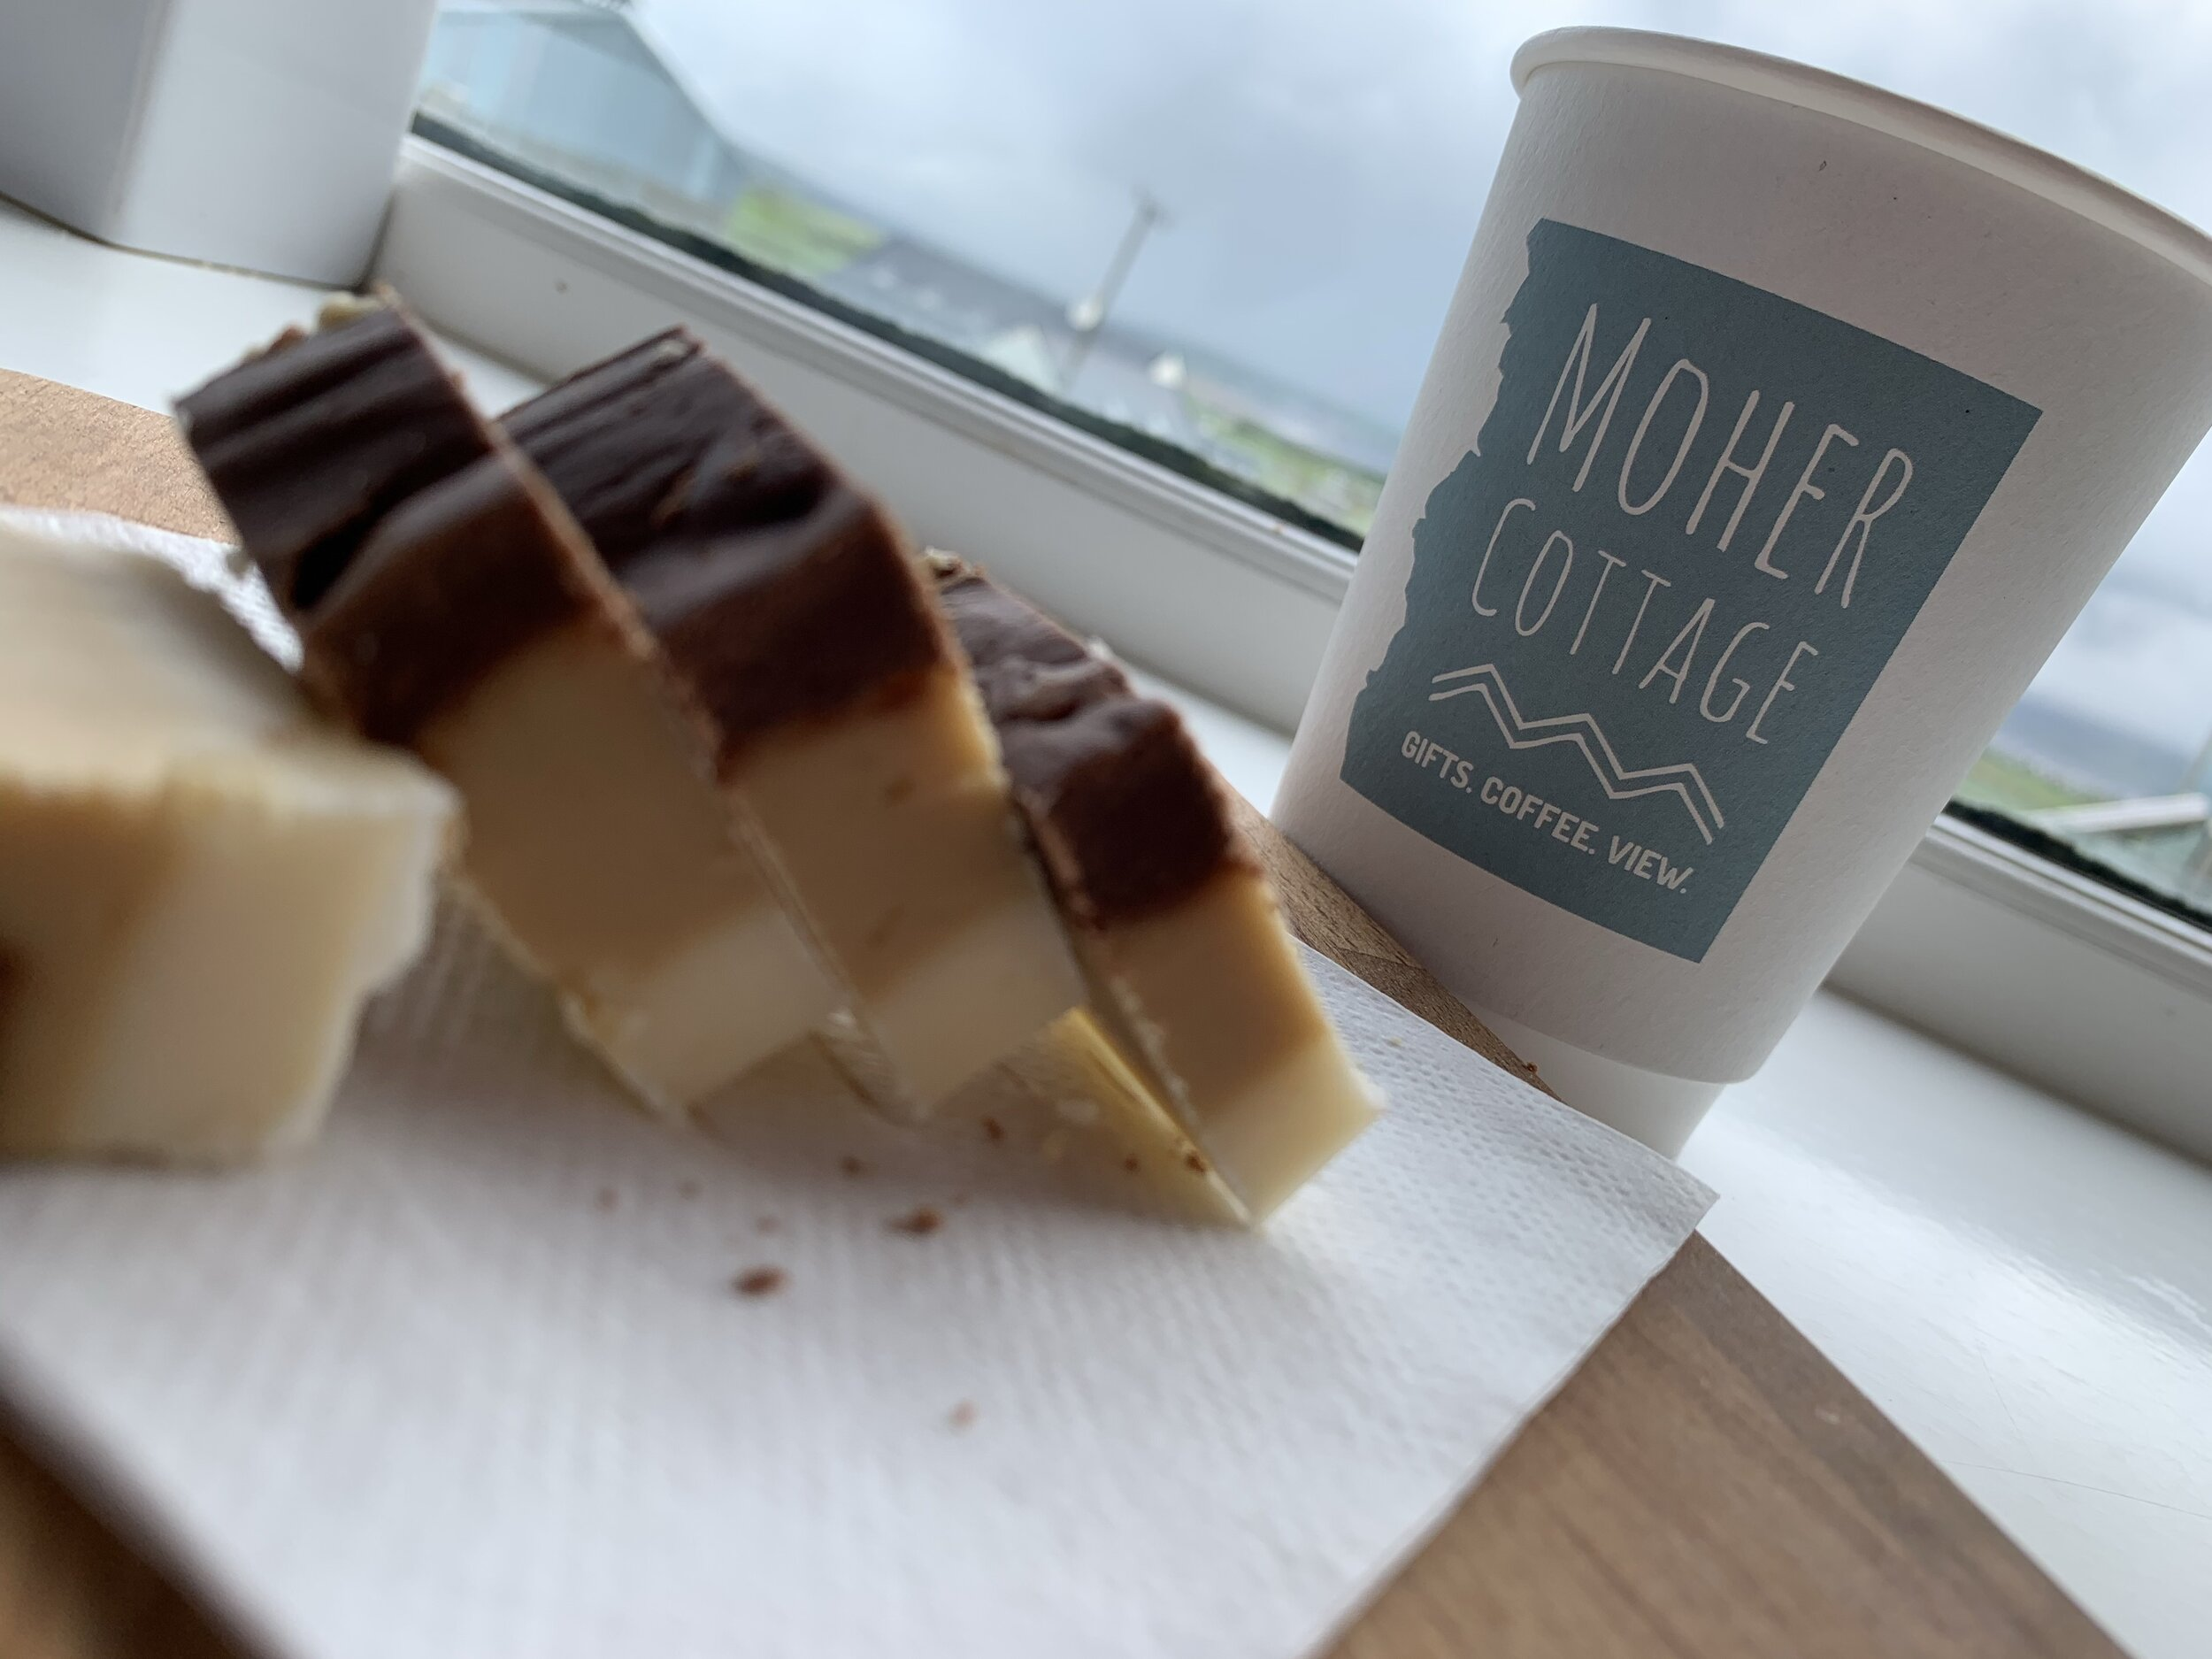 Moher Cottage Coffee and Fudge